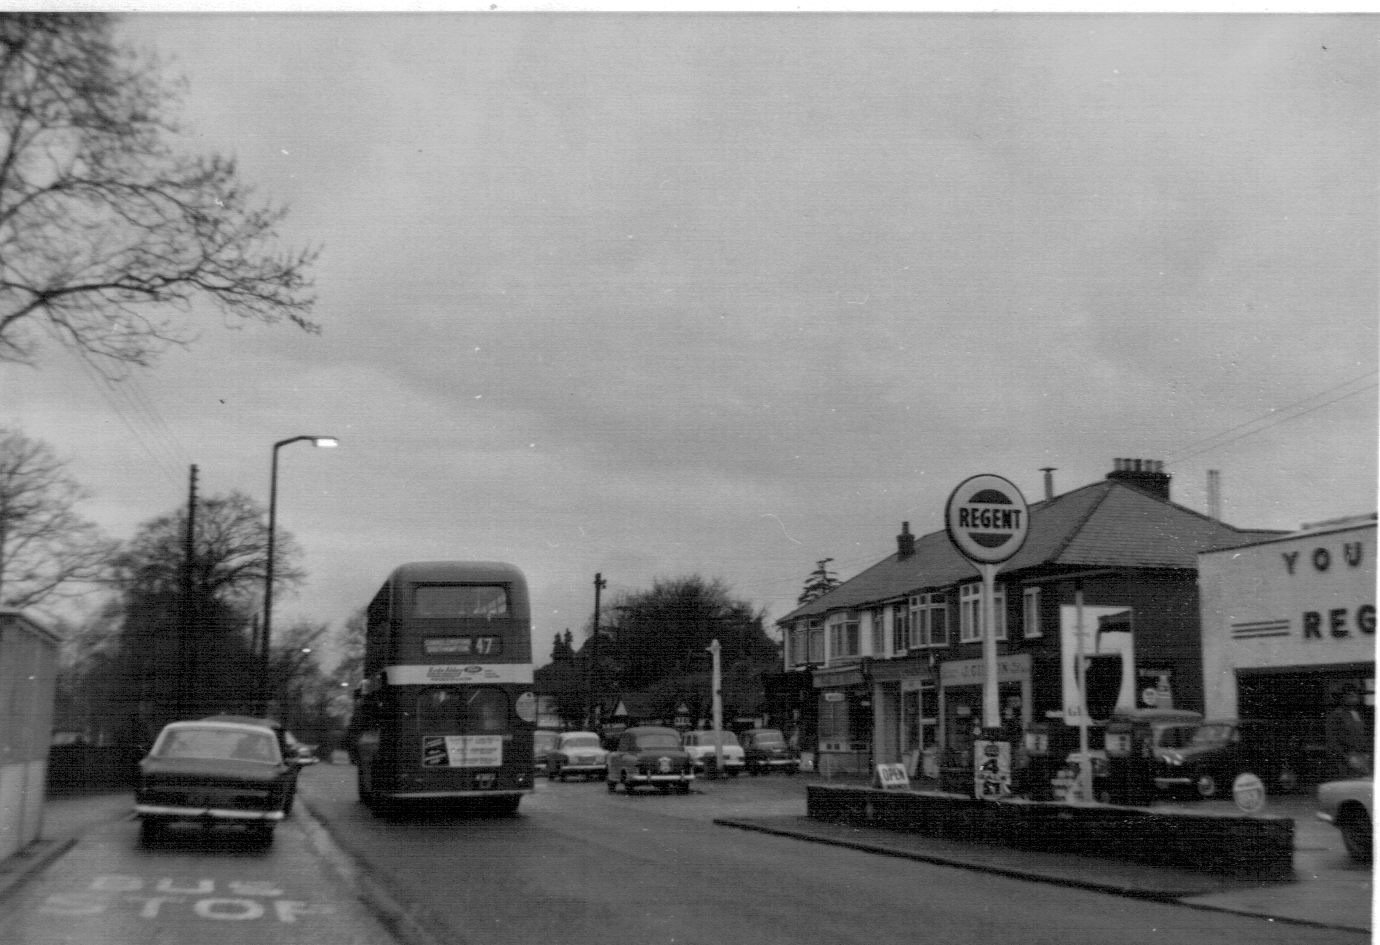 A Number 47 bus! Do you recognise this area in Chandler's Ford? Image credit: Doug Clews.